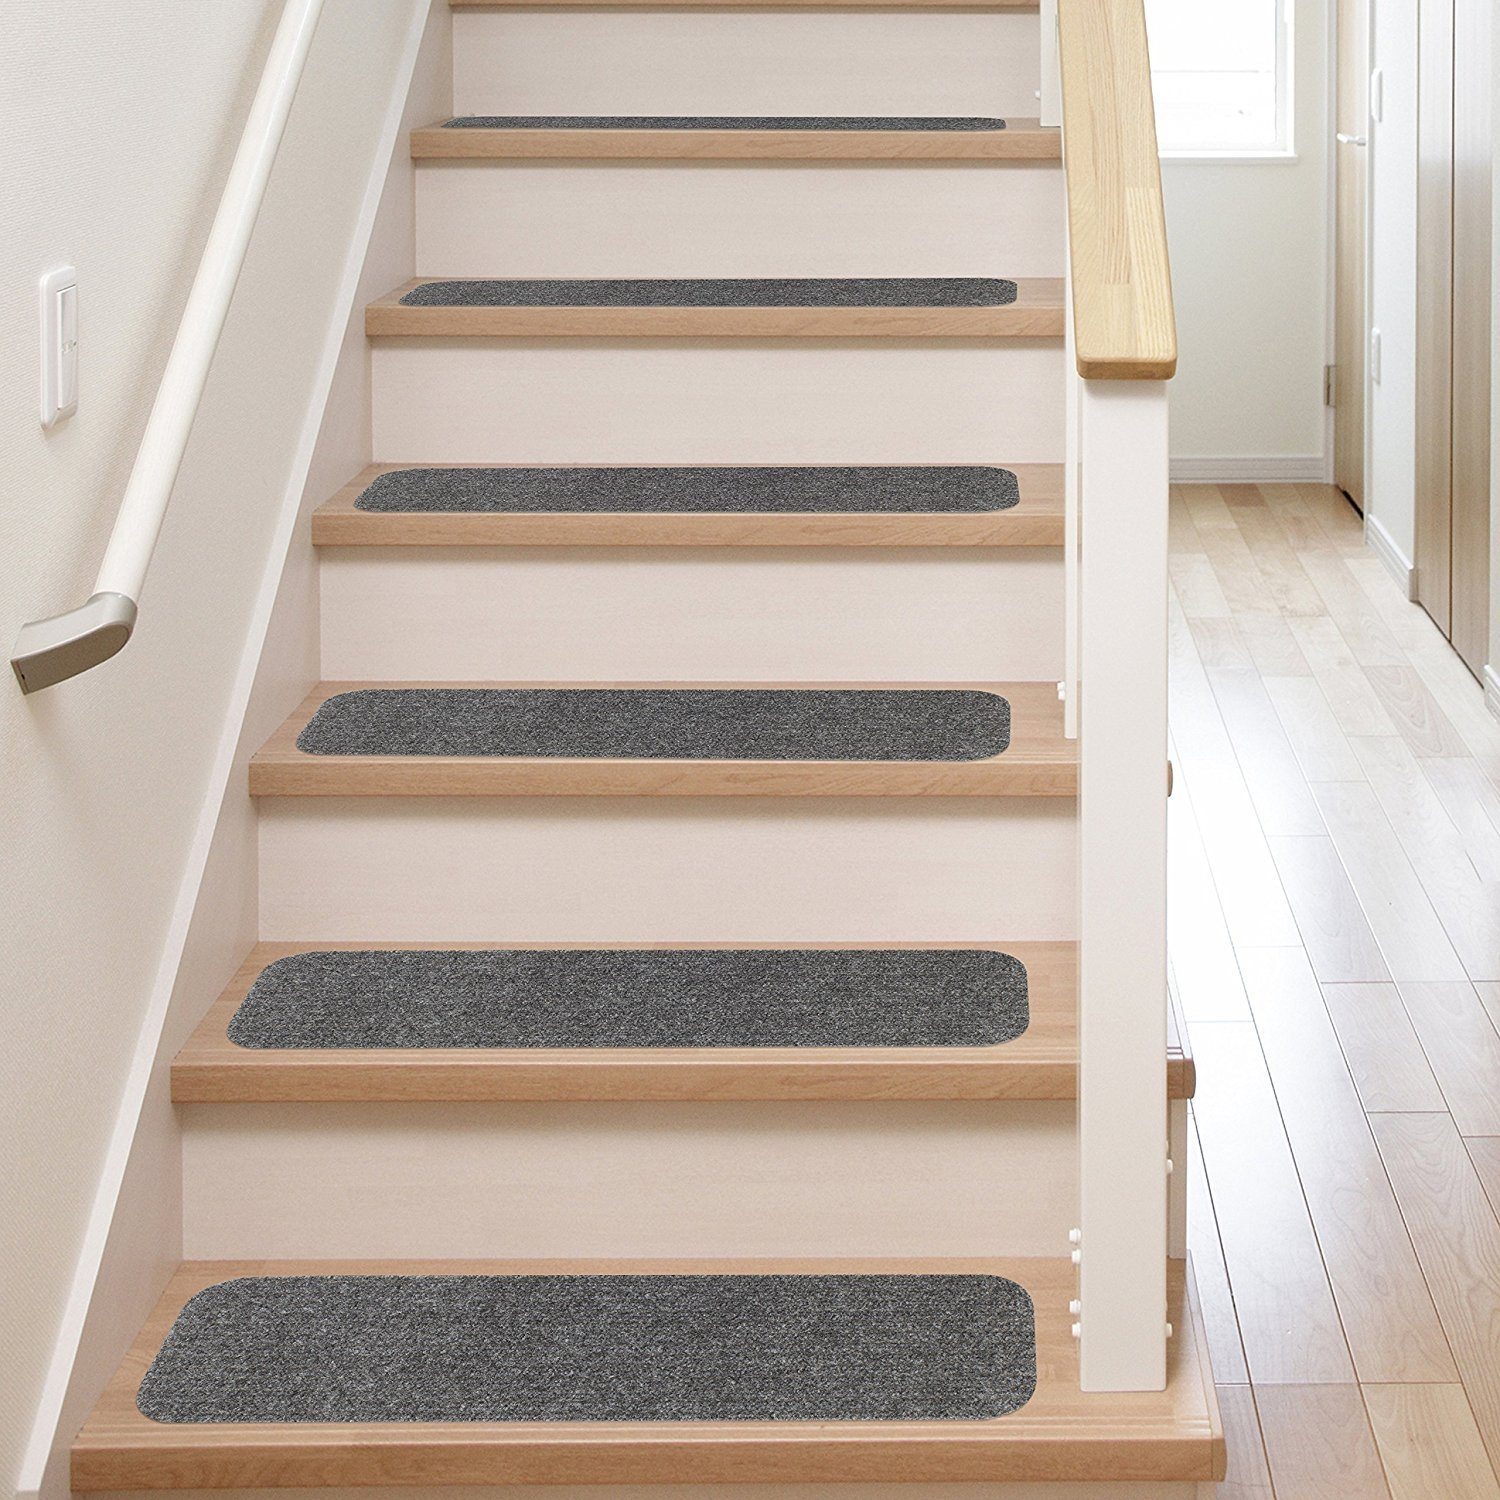 13 Stair Treads Non Slip Carpet Pads Easy Tape Installation Intended For Stair Tread Carpet Pads (Image 1 of 15)